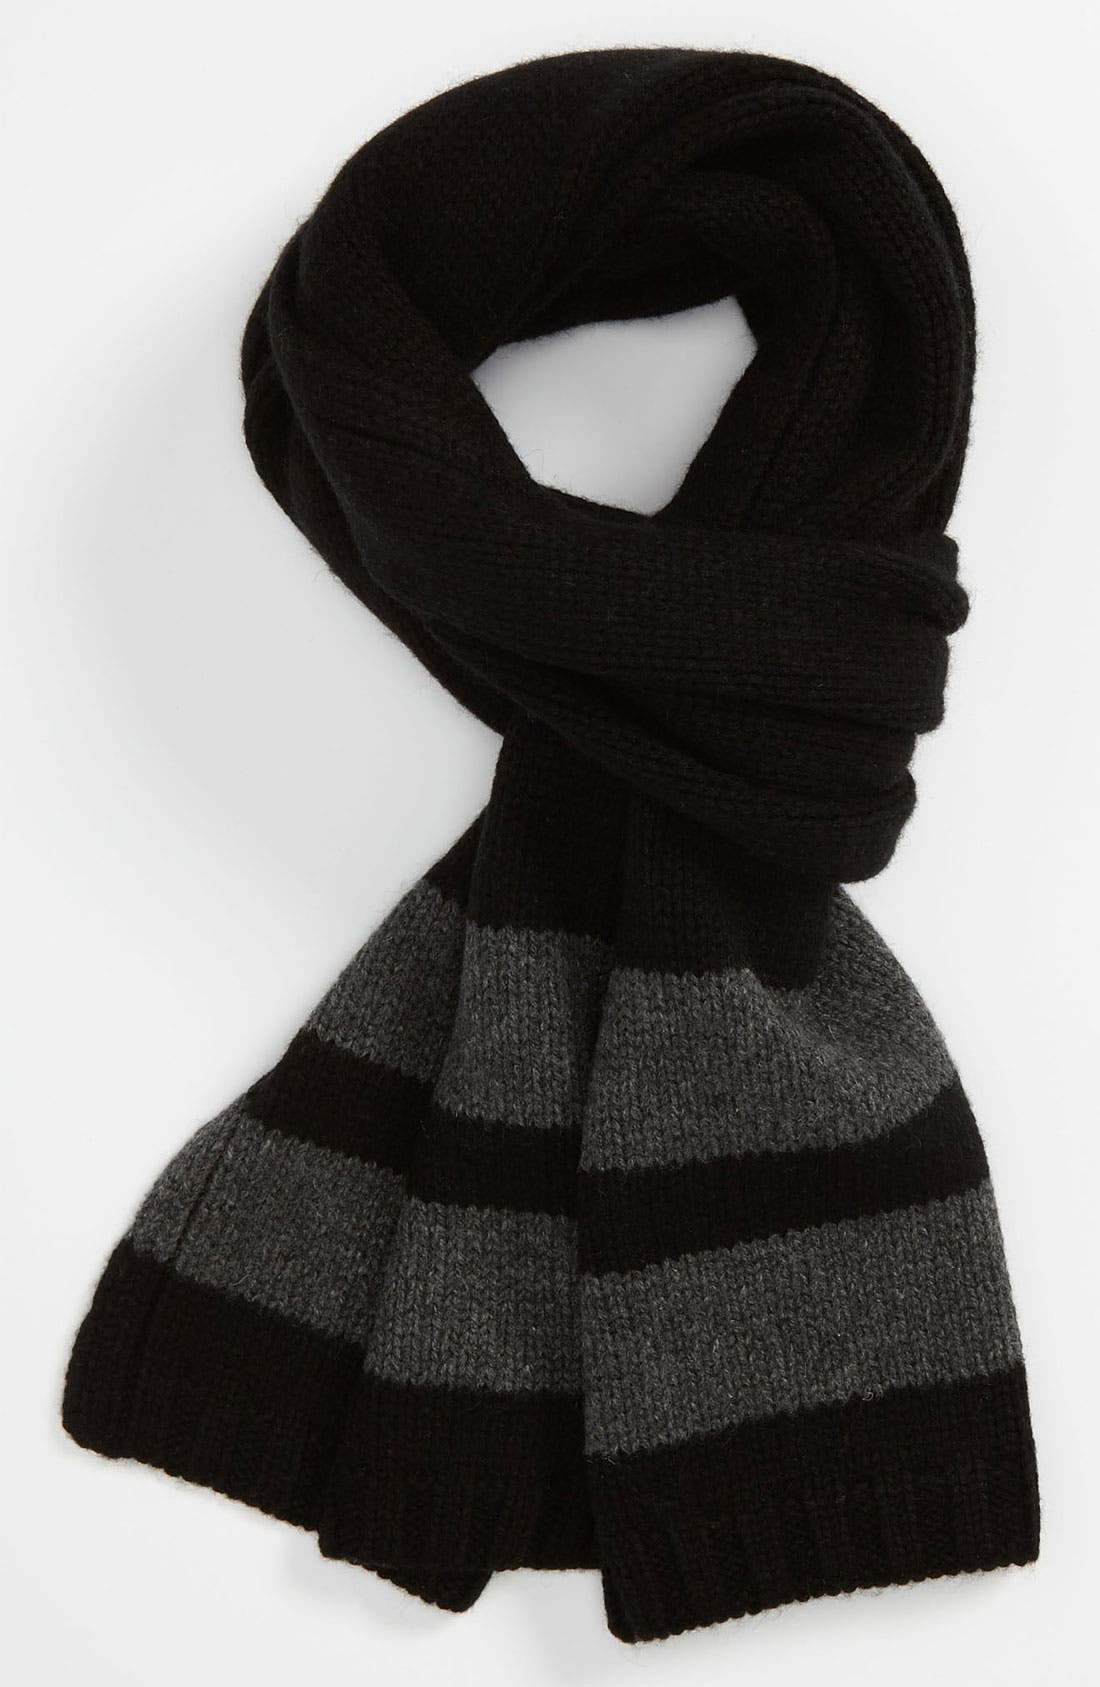 Alternate Image 1 Selected - Michael Kors Wool Scarf